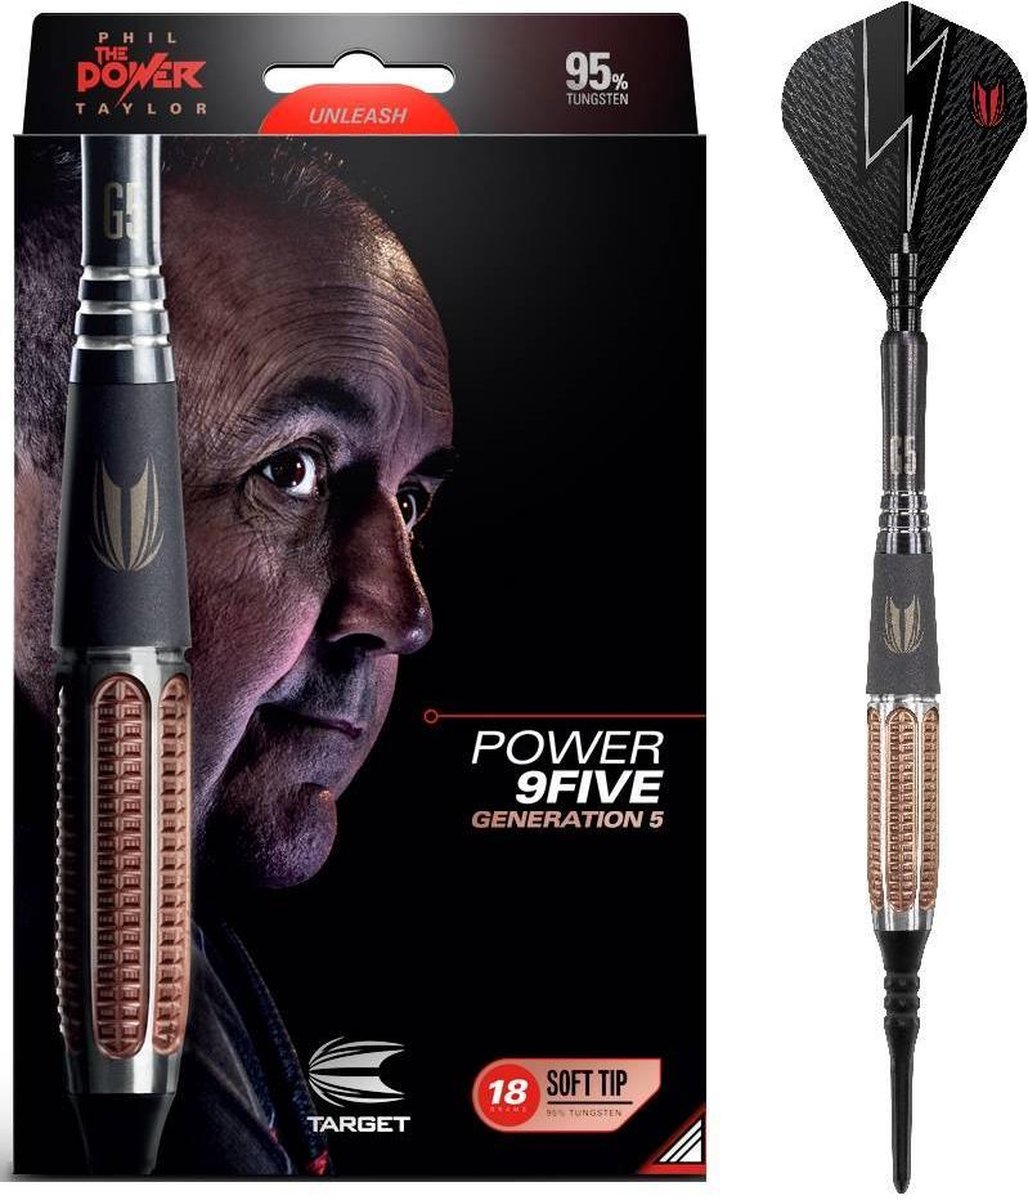 Phil Taylor Power 9FIVE Gen 5 95% Soft Tip - 20 Gram